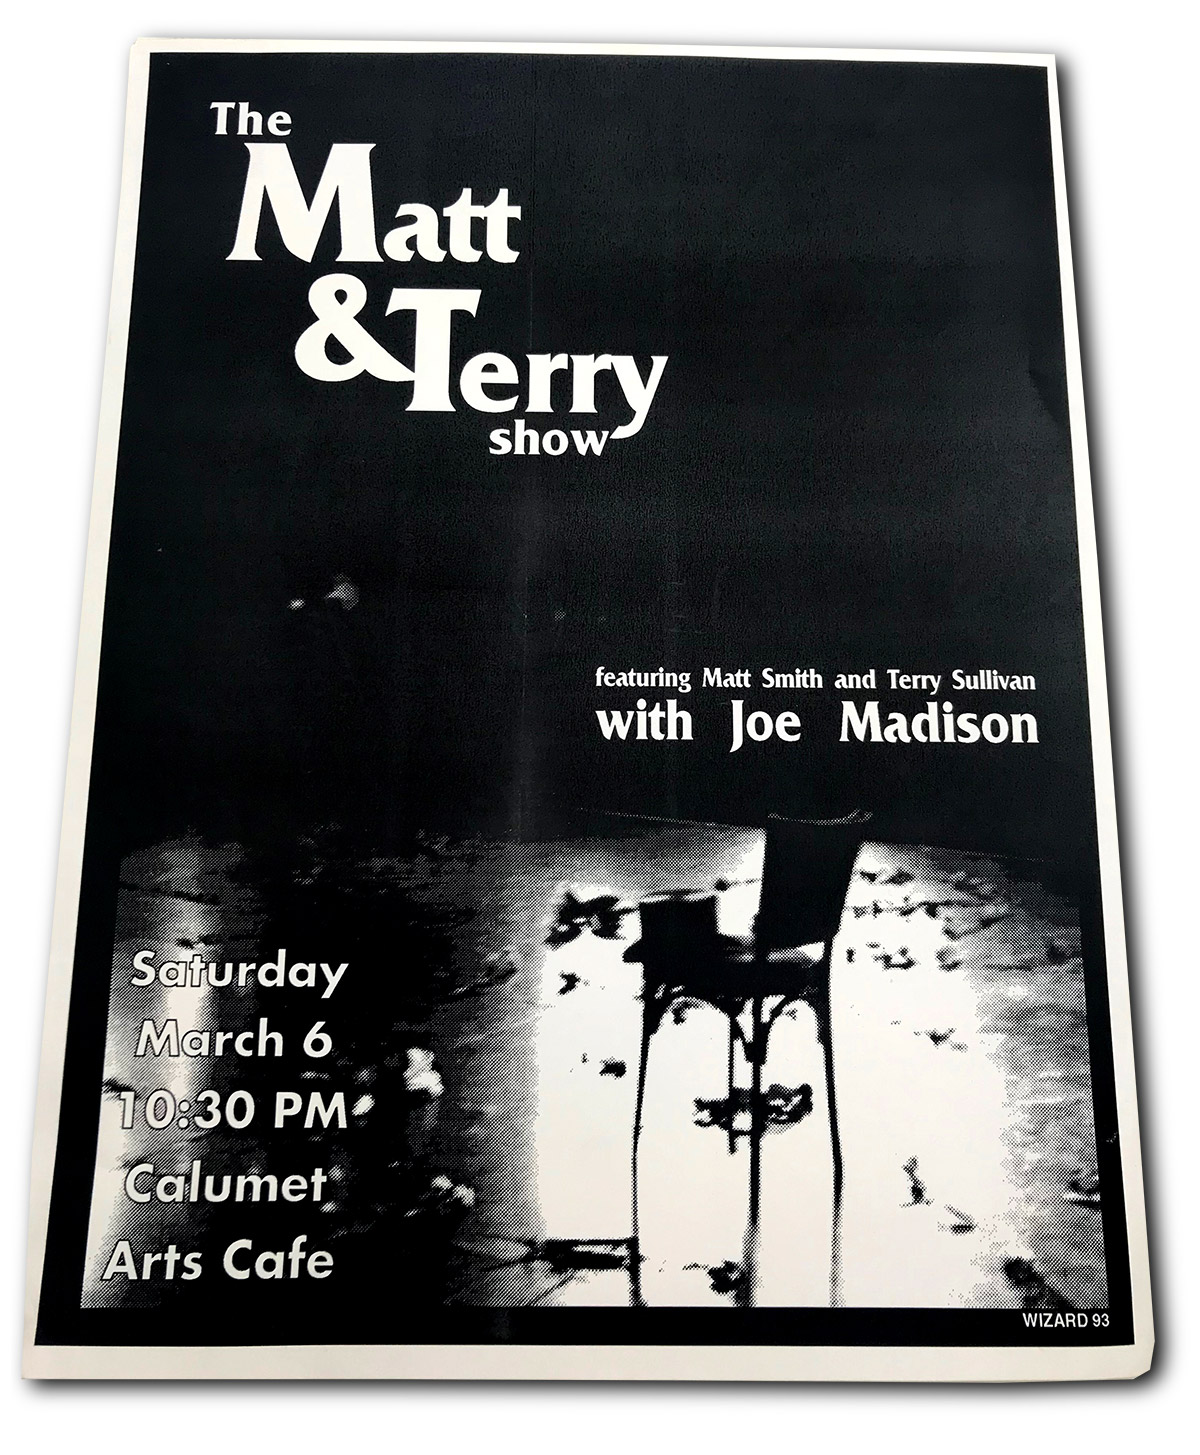 Matt and Terry show, terry sullivan, matt smith, calumet arts cafe, buffalo ny, poster design, mark wisz, rock poster design